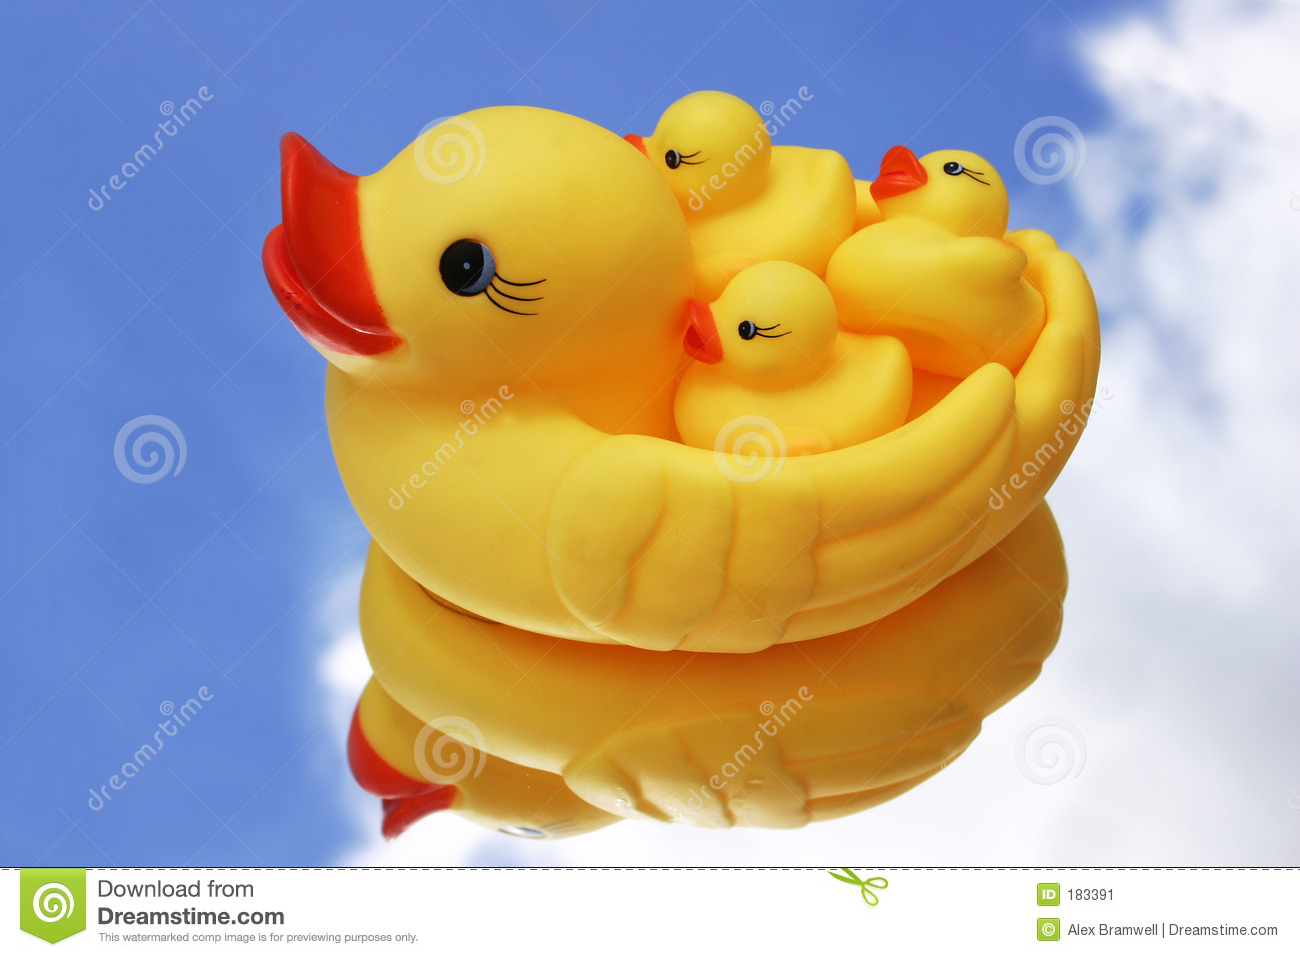 Wubber Duckies